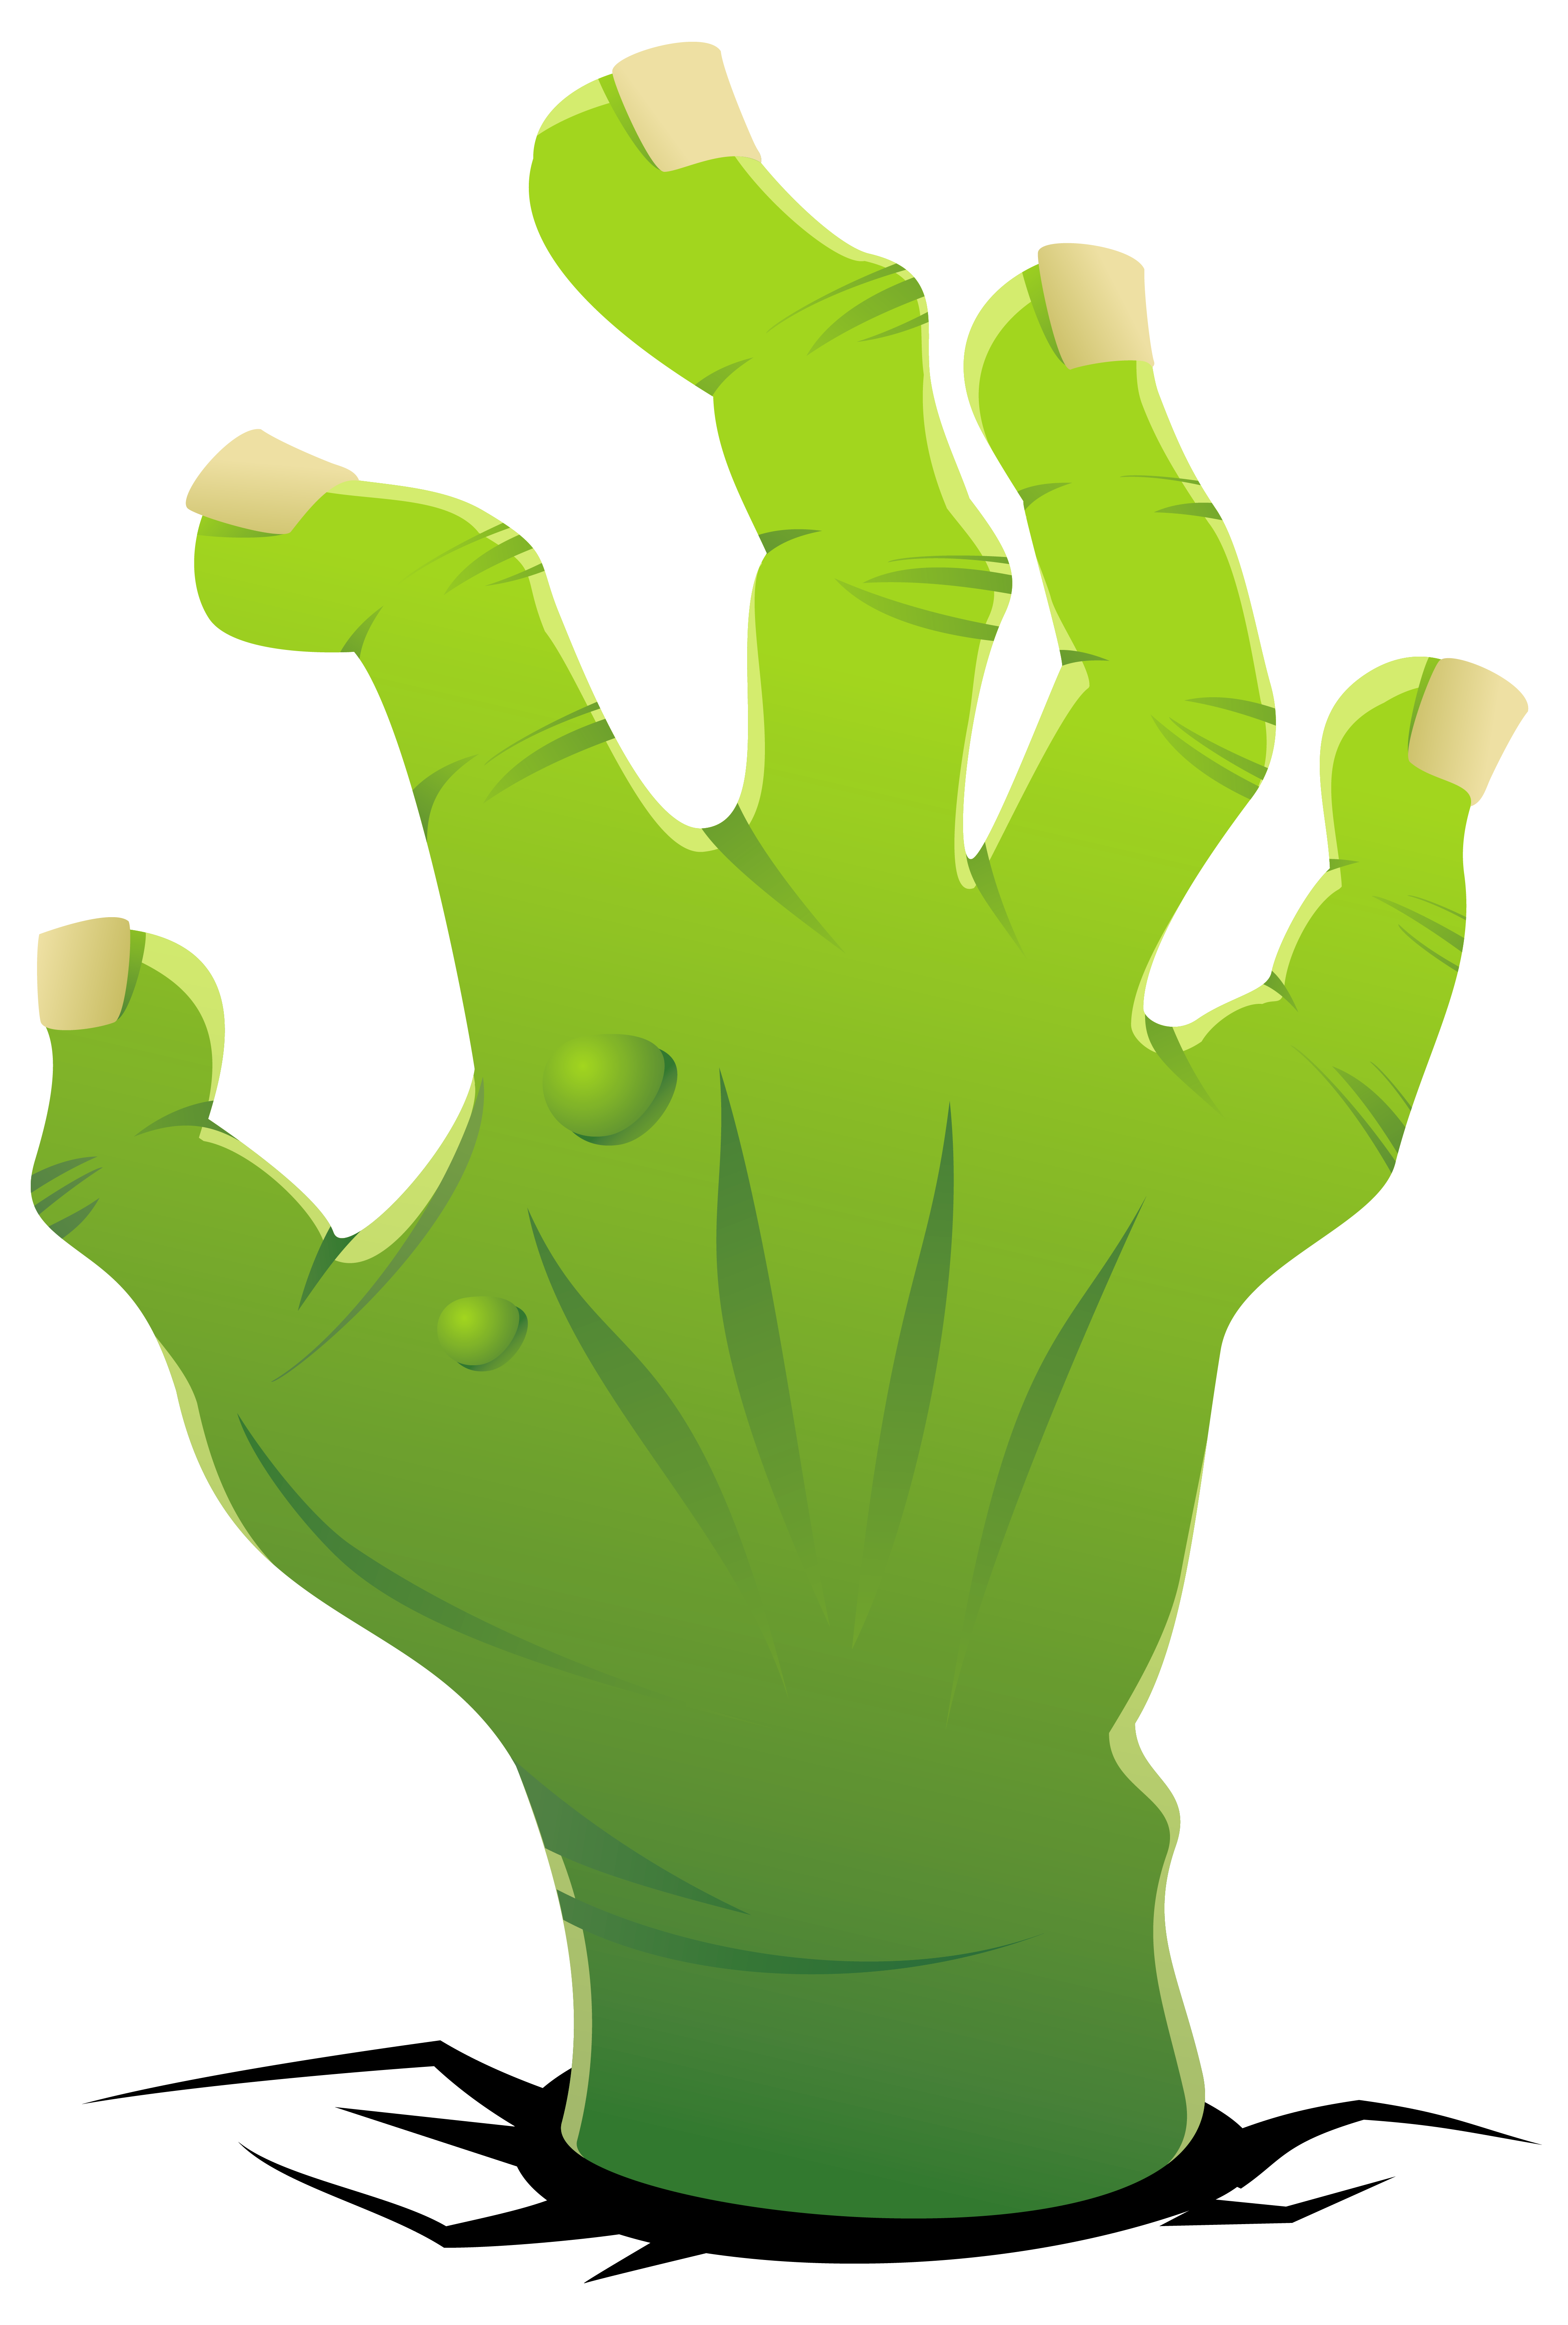 Hands clipart zombie. Hand png image gallery